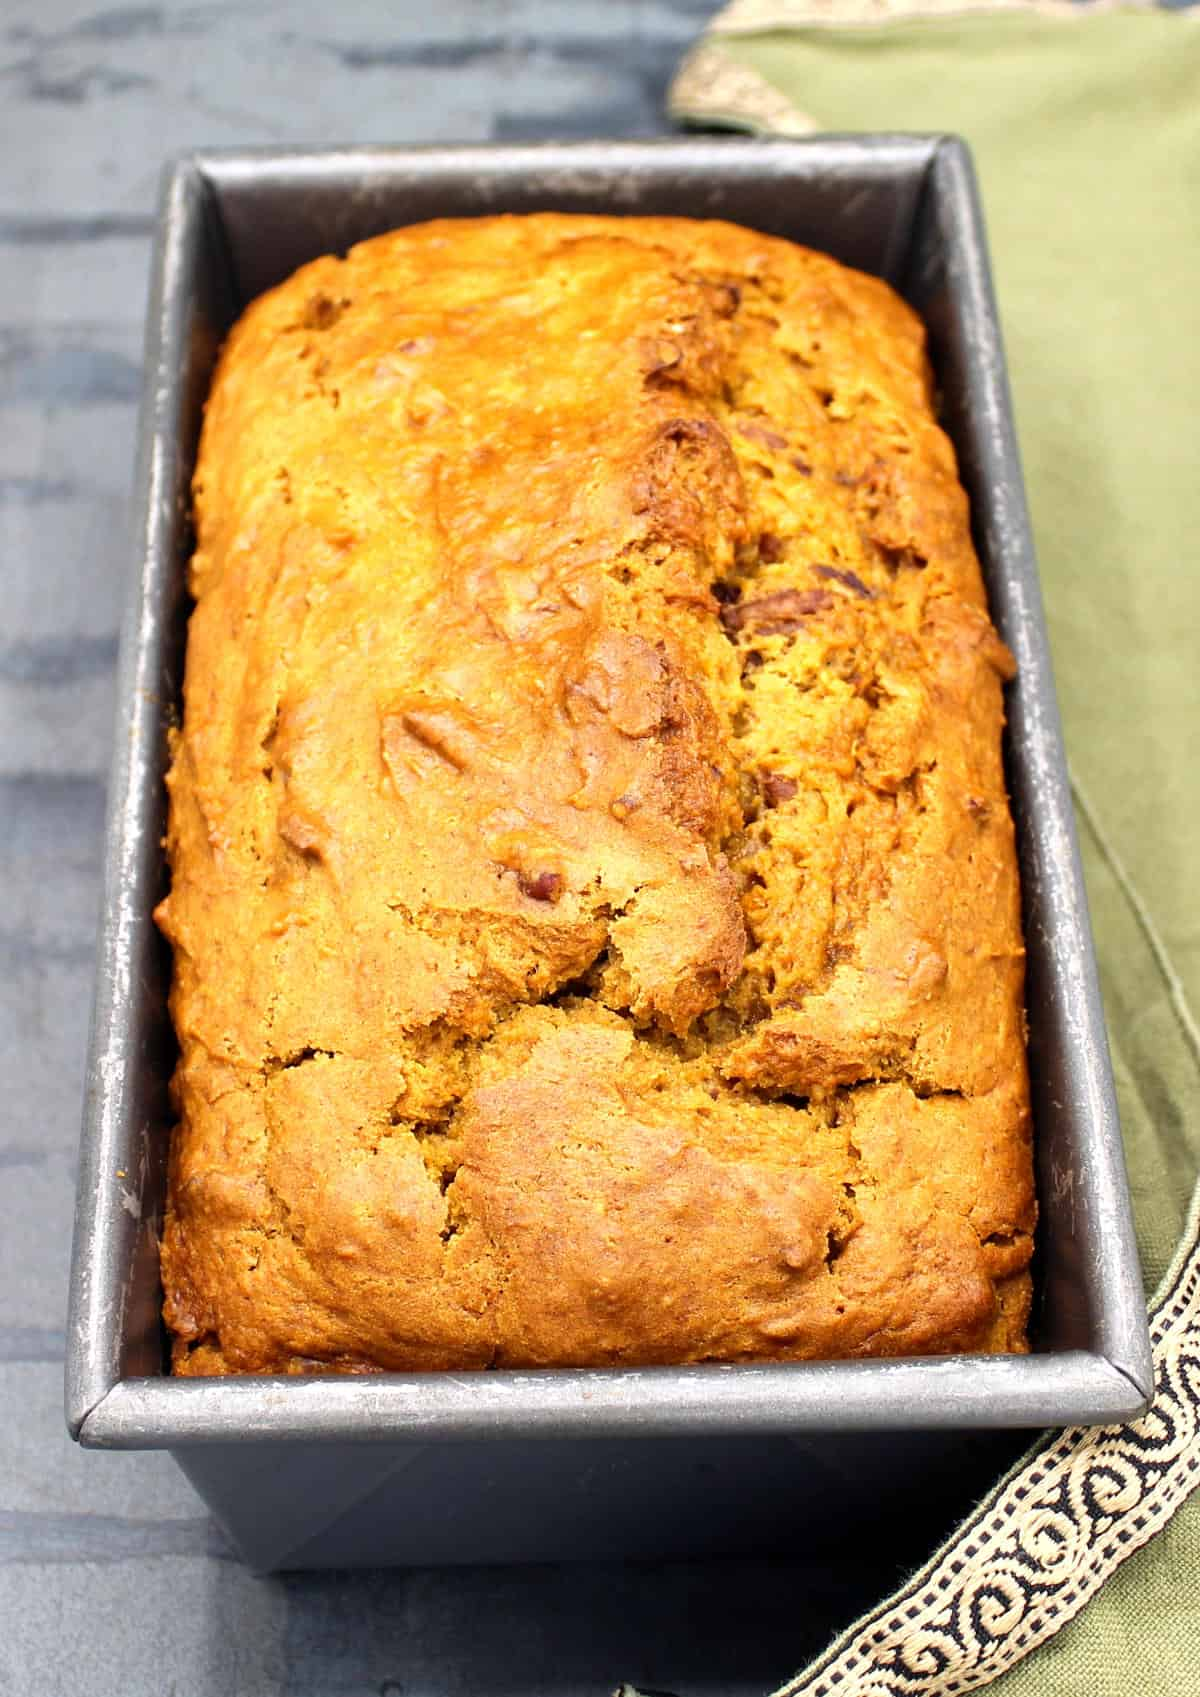 Pumpkin bread fresh out of the oven in loaf pan.